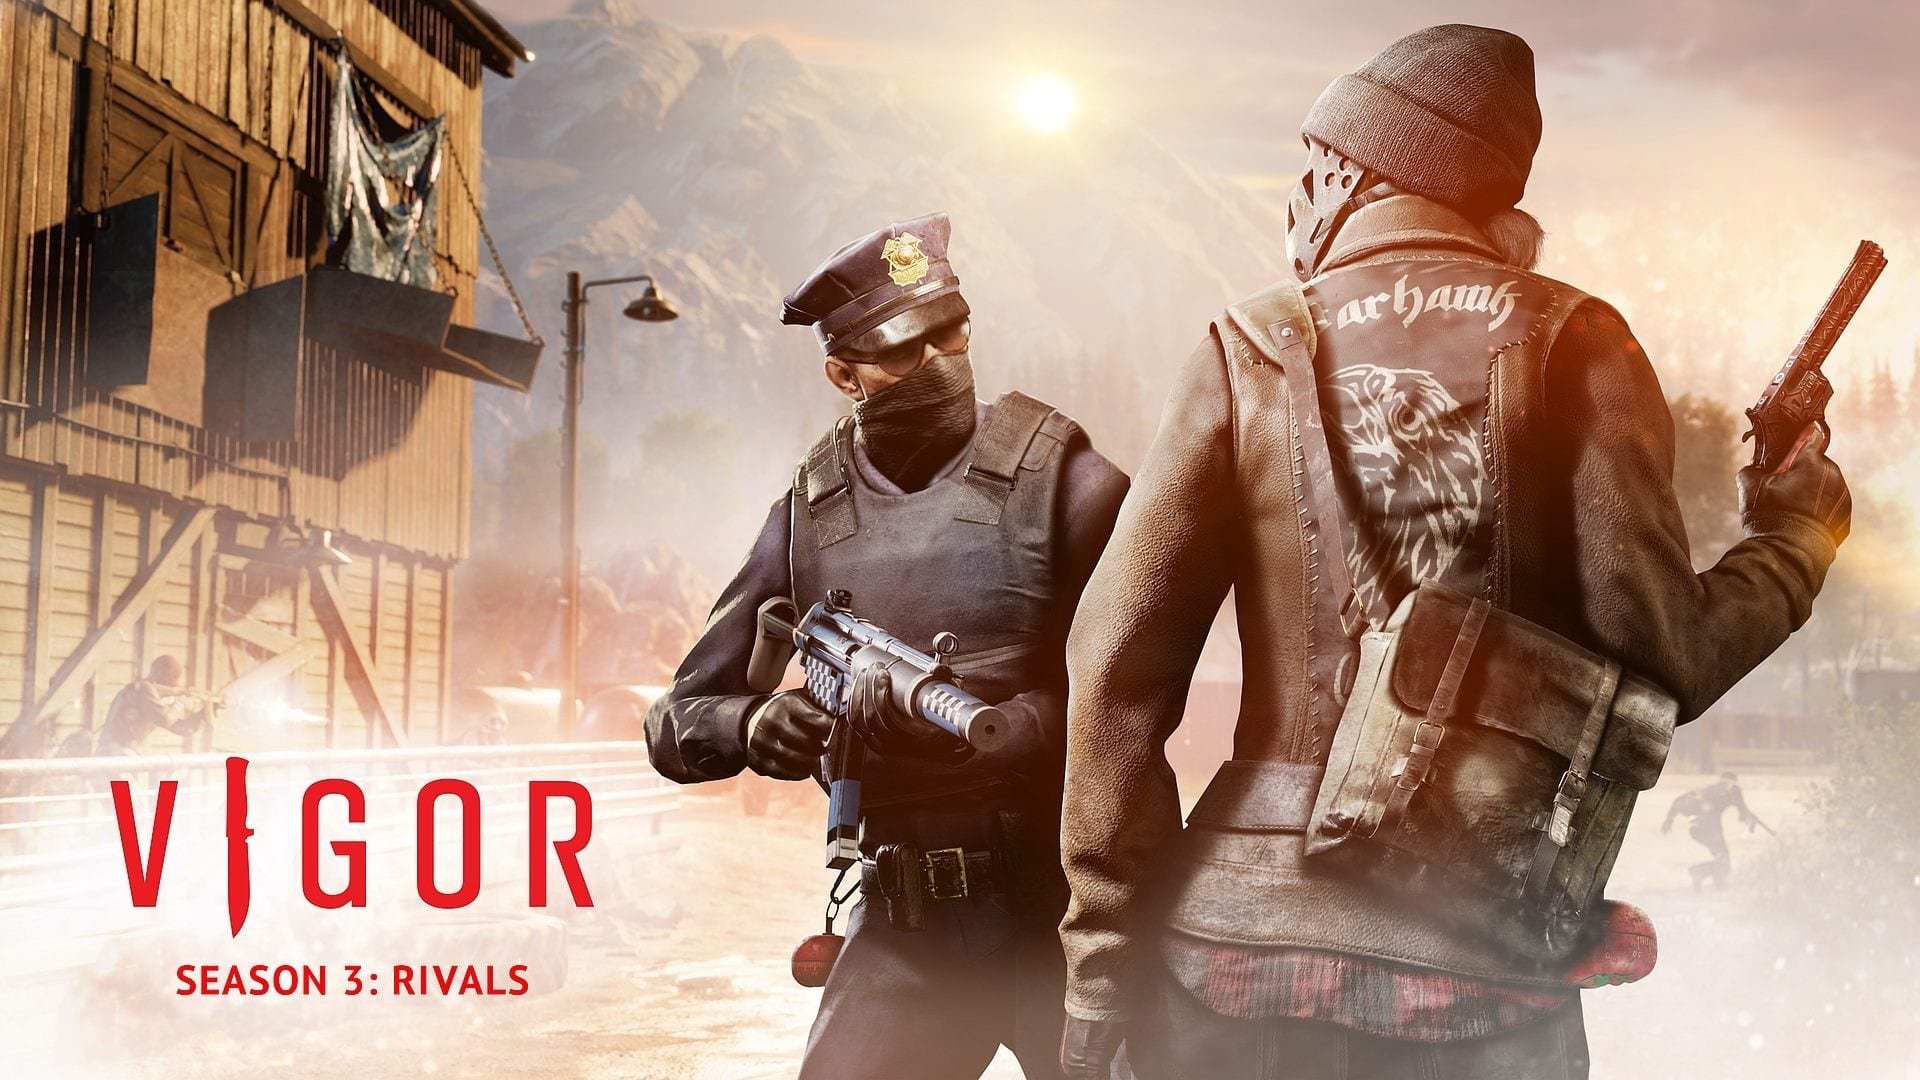 'Tis The Season For Shootouts: Vigor Introduces New Game Mode and Additional Silenced Weapons in Season 3